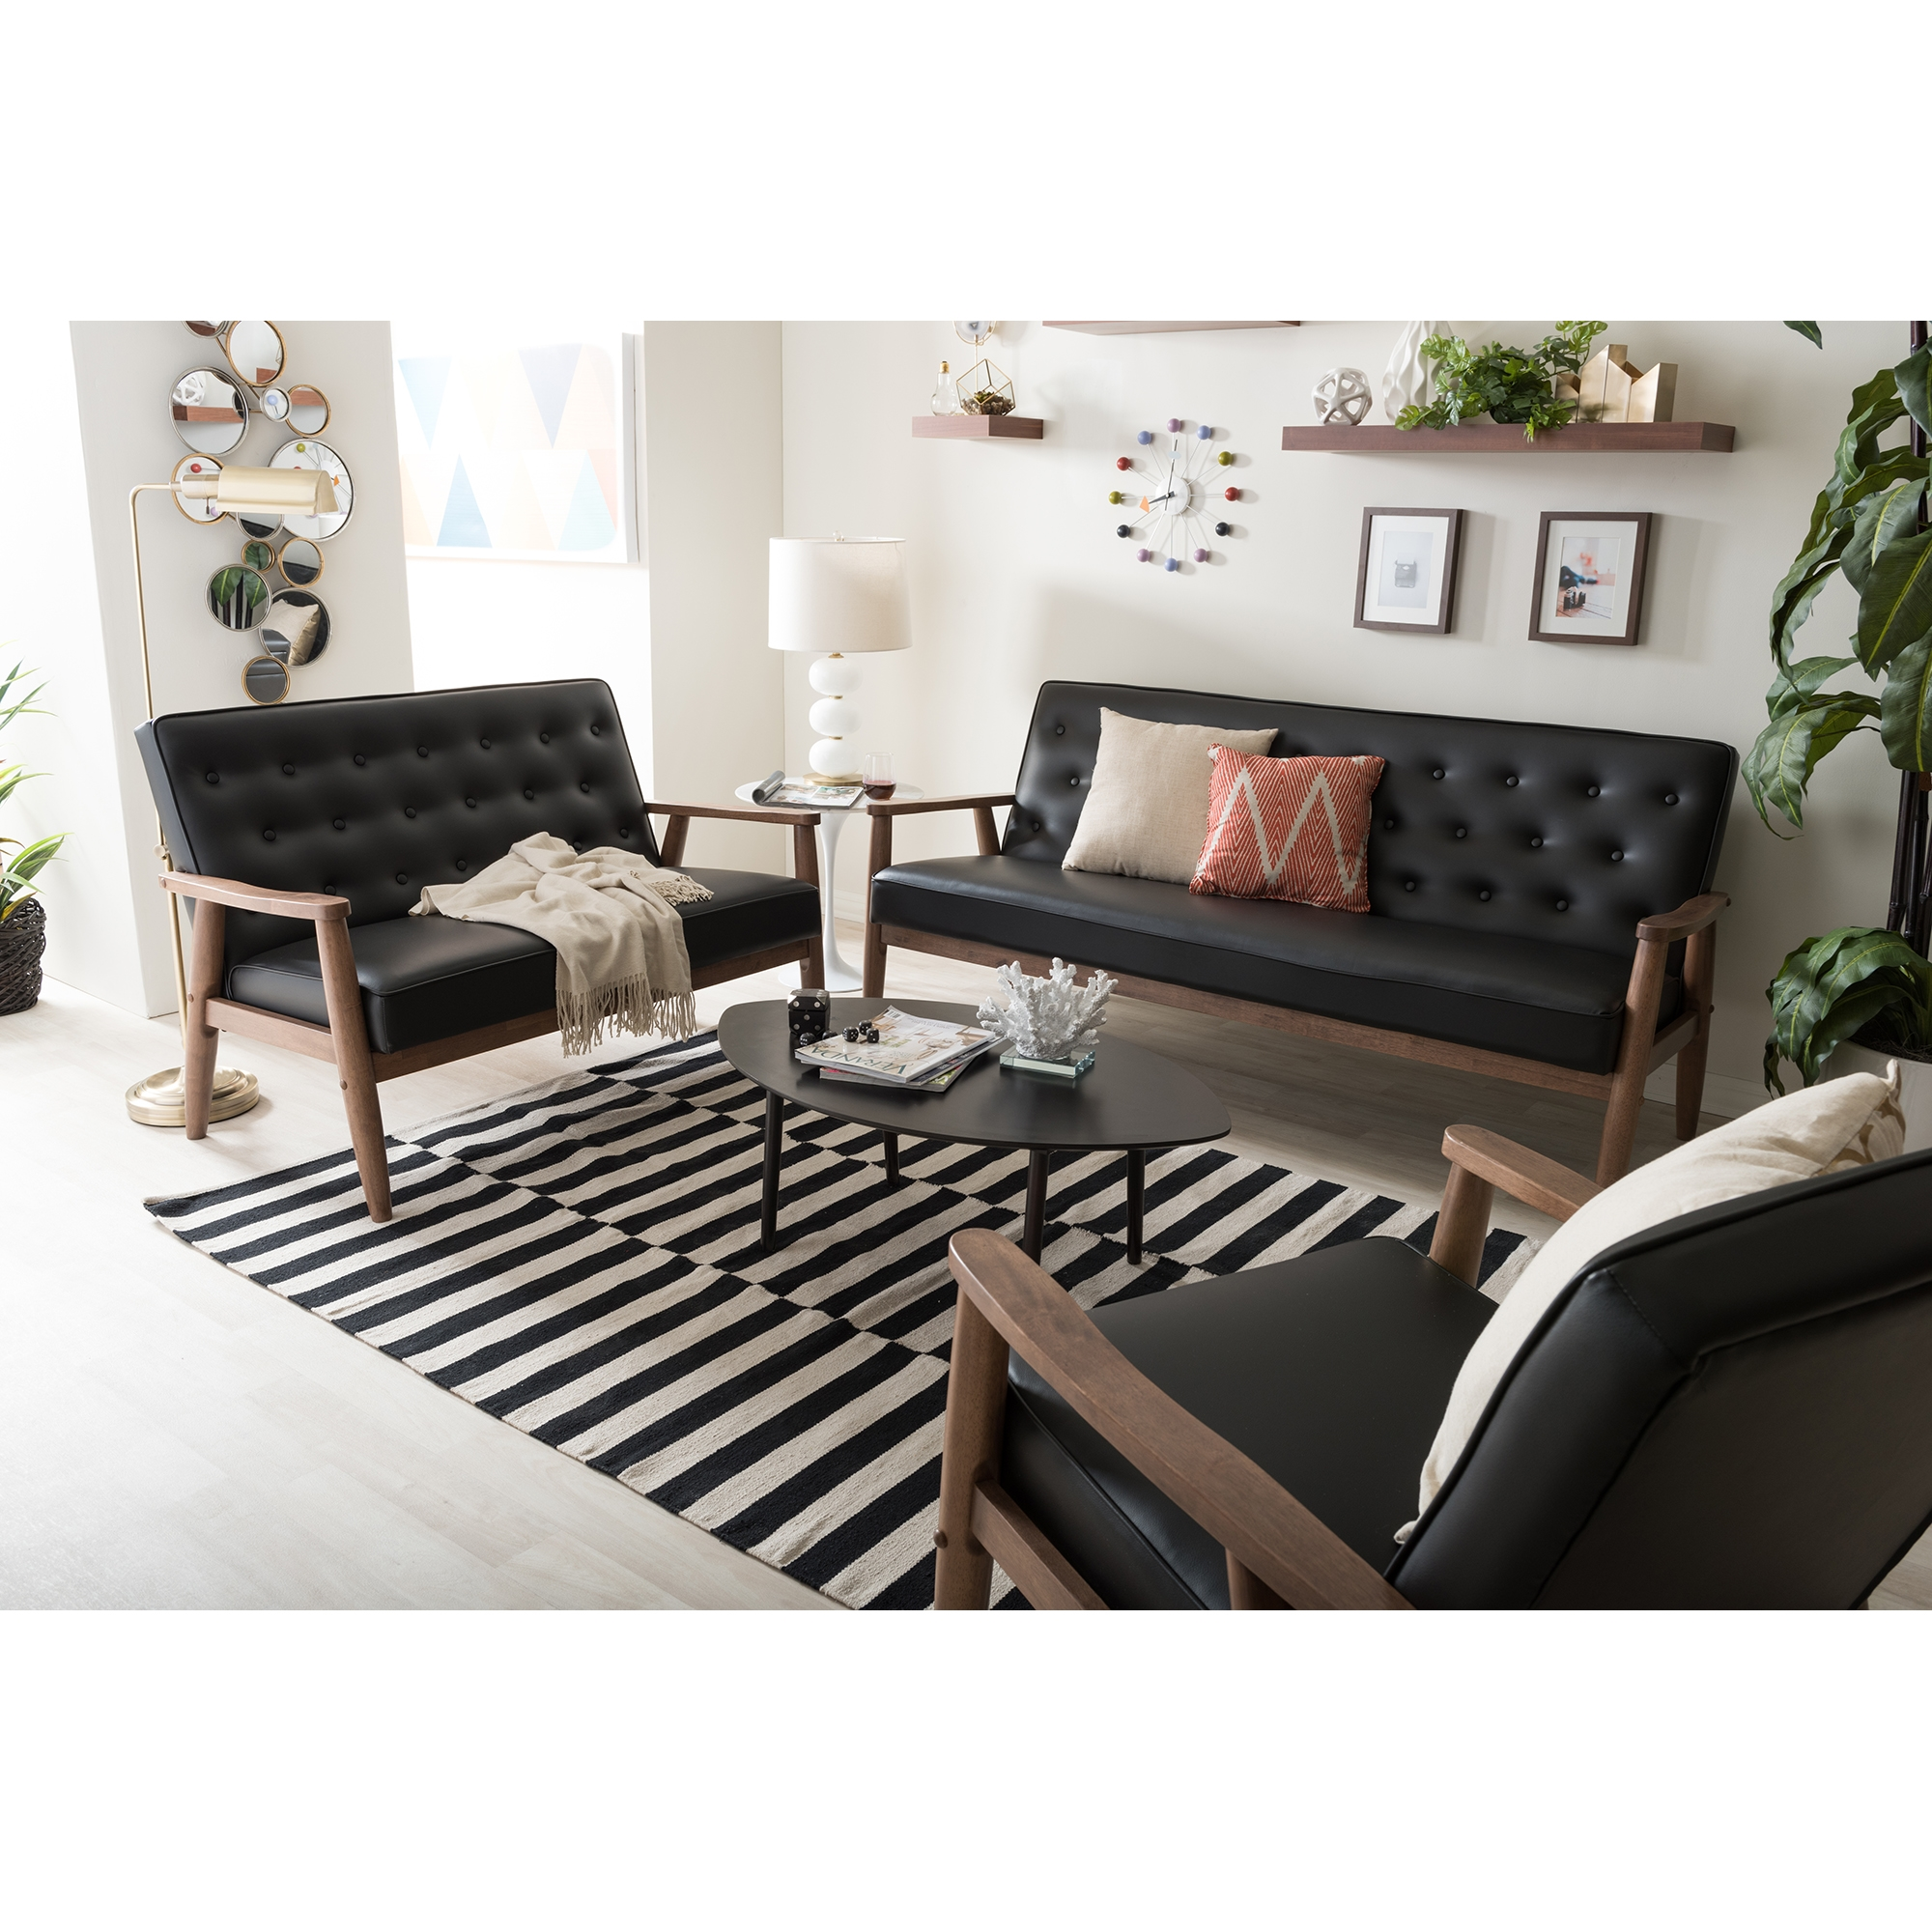 ... Baxton Studio Sorrento Mid Century Retro Modern Black Faux Leather  Upholstered Wooden 3 Piece Living